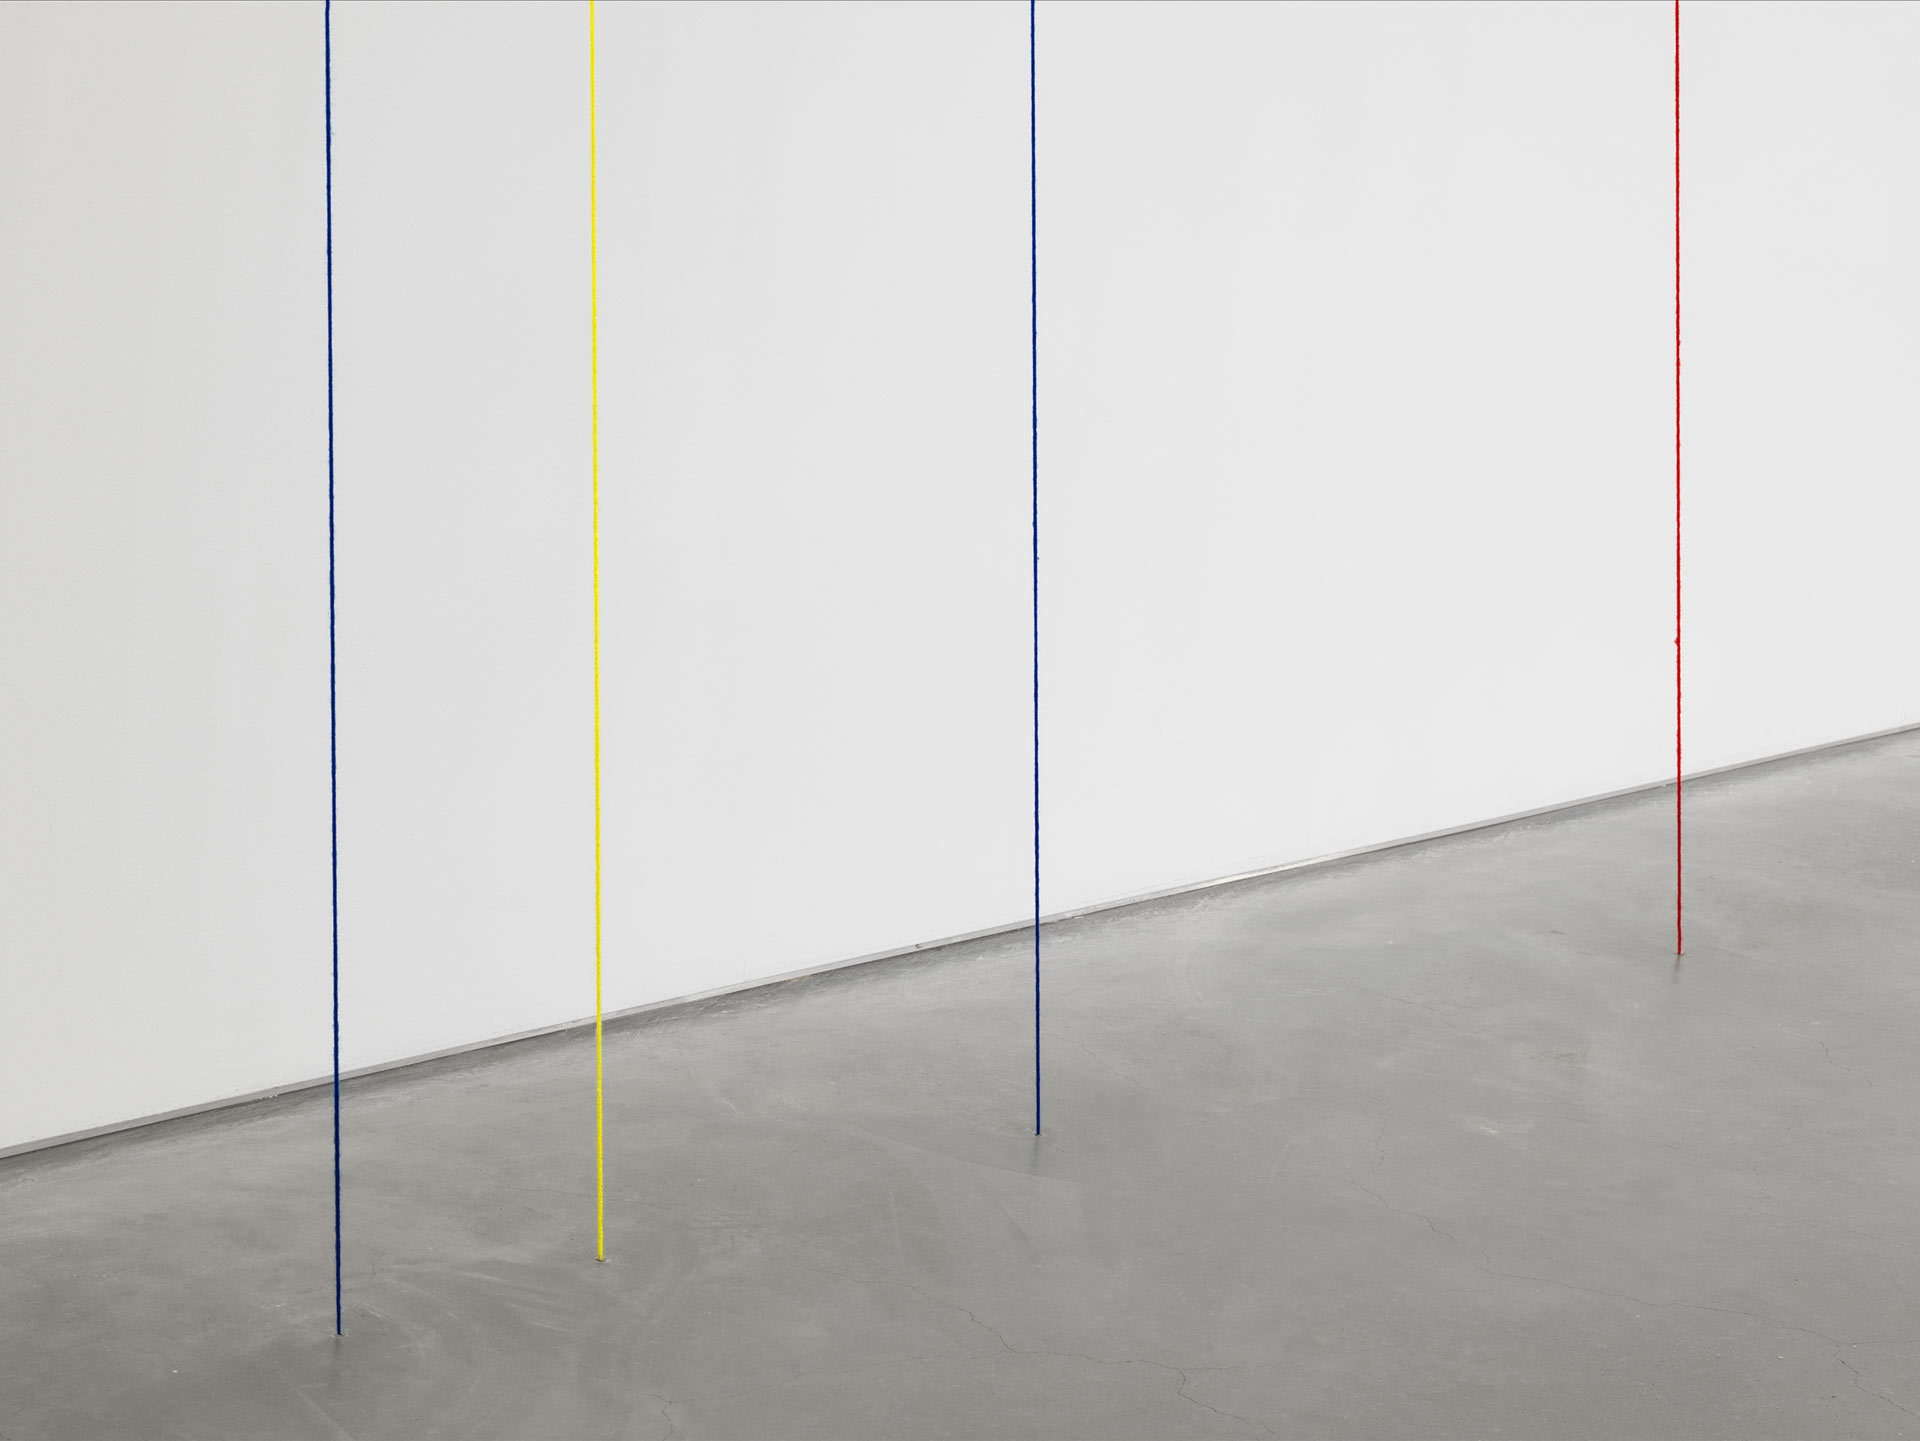 A detail from a sculpture by Fred Sandback, titled Untitled (Six-part Leaning Construction), dated 1985.